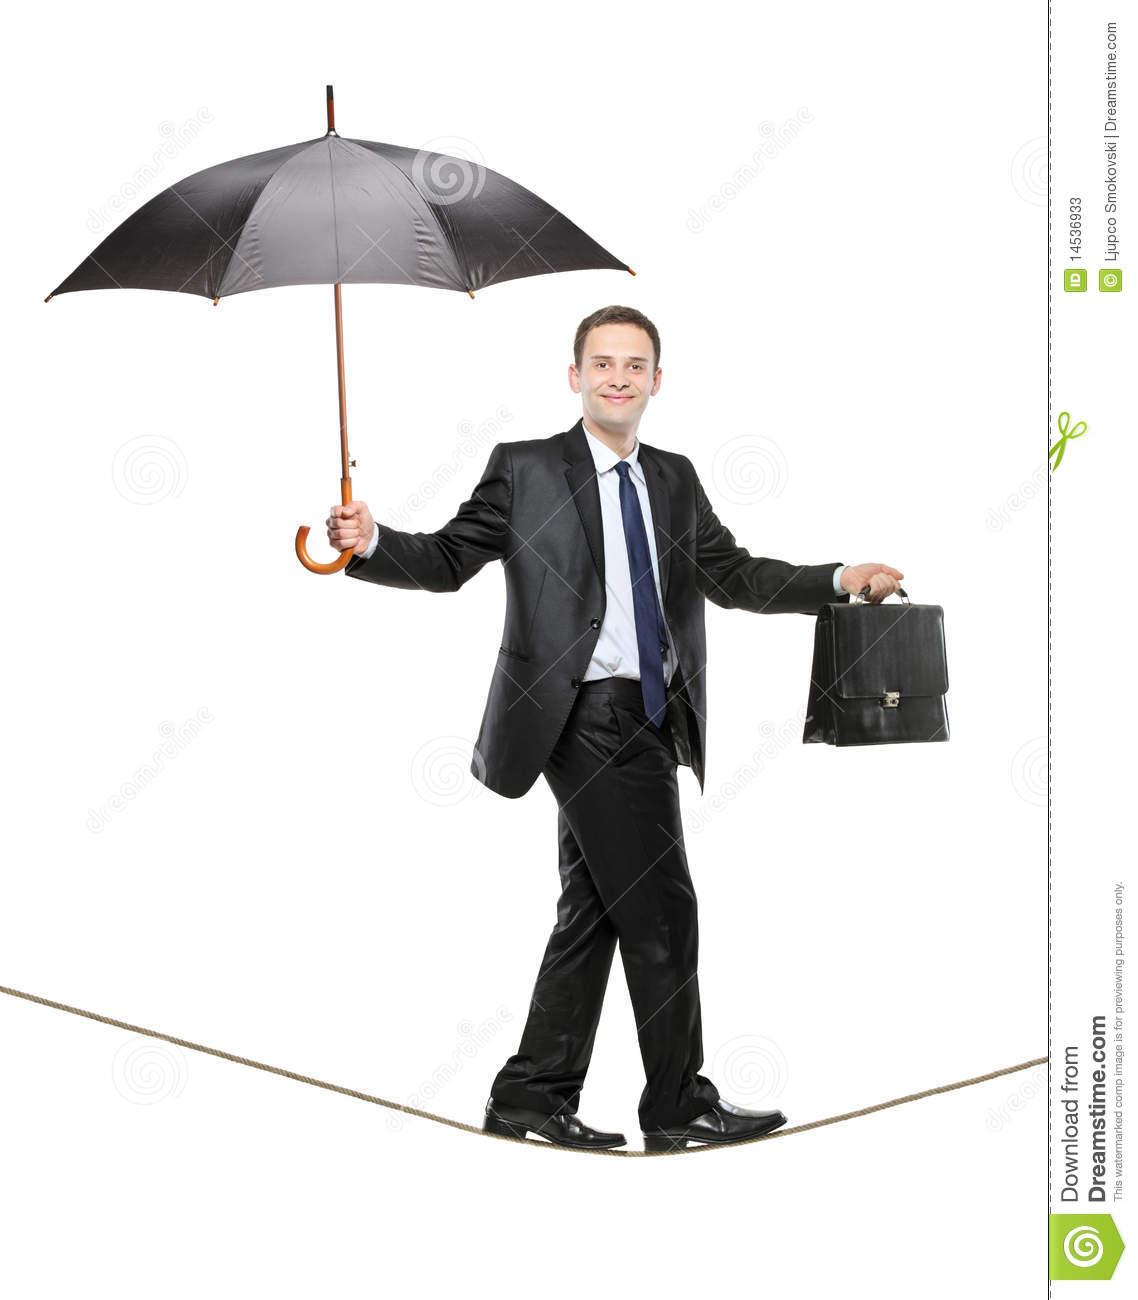 A Business Person Holding An Umbrella Stock Image